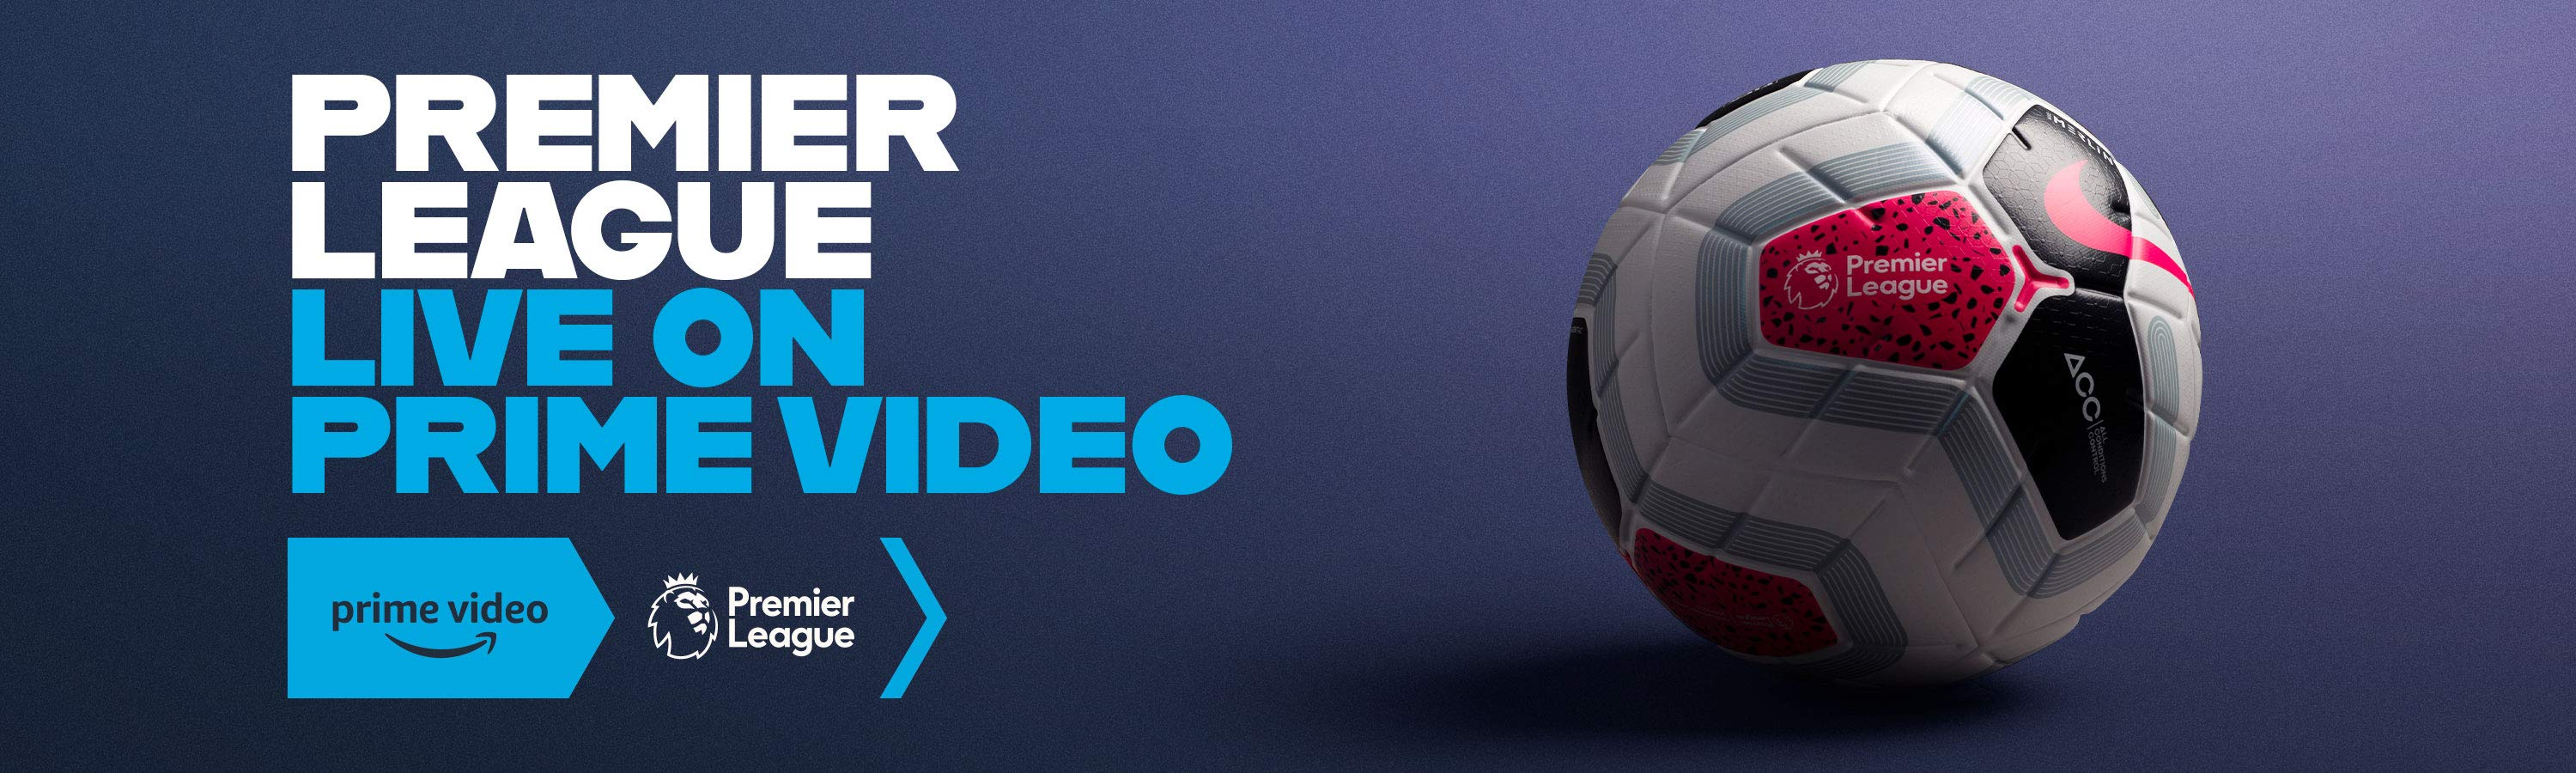 Premier League on Amazon Prime